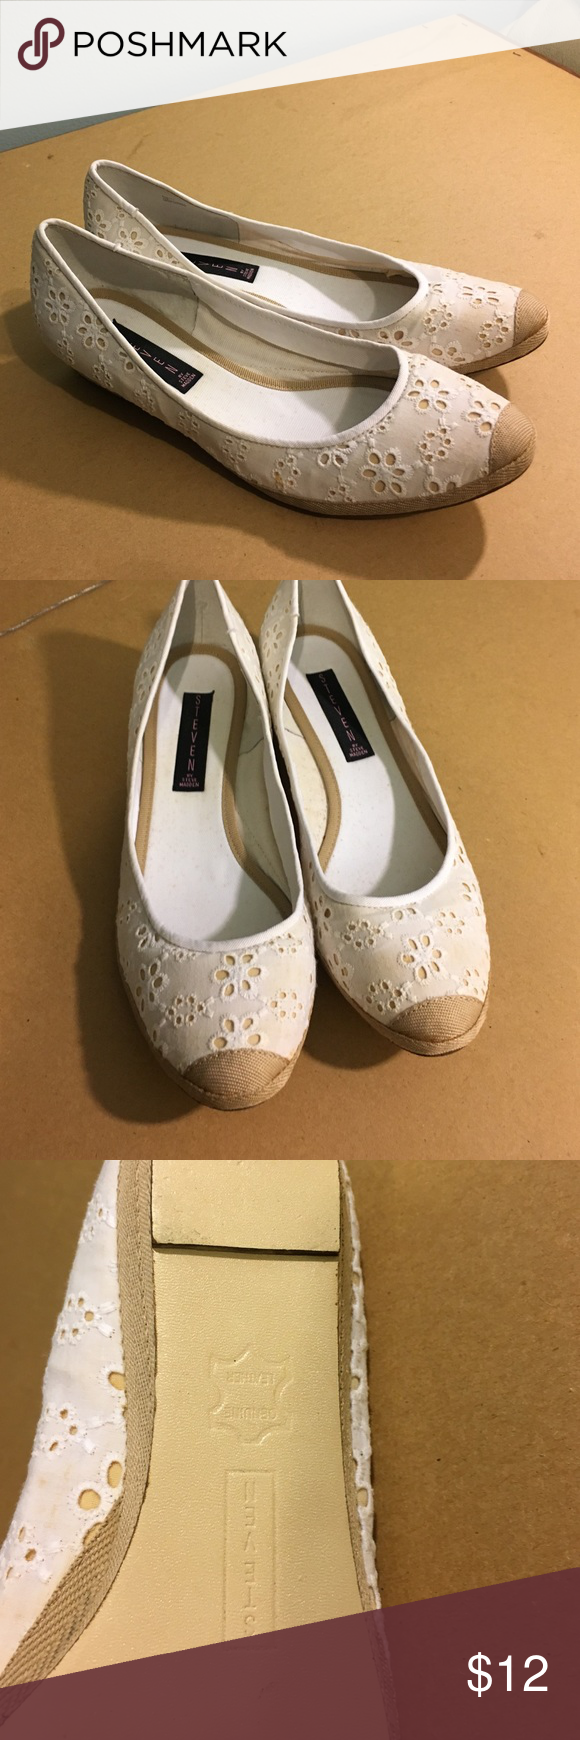 Steven by Steve Madden Flats/Espadrilles RARE!! White and beige with small wedge. Worn couple of times. Cant buy this style no more. Leather sole. Steven by Steve Madden Shoes Flats & Loafers